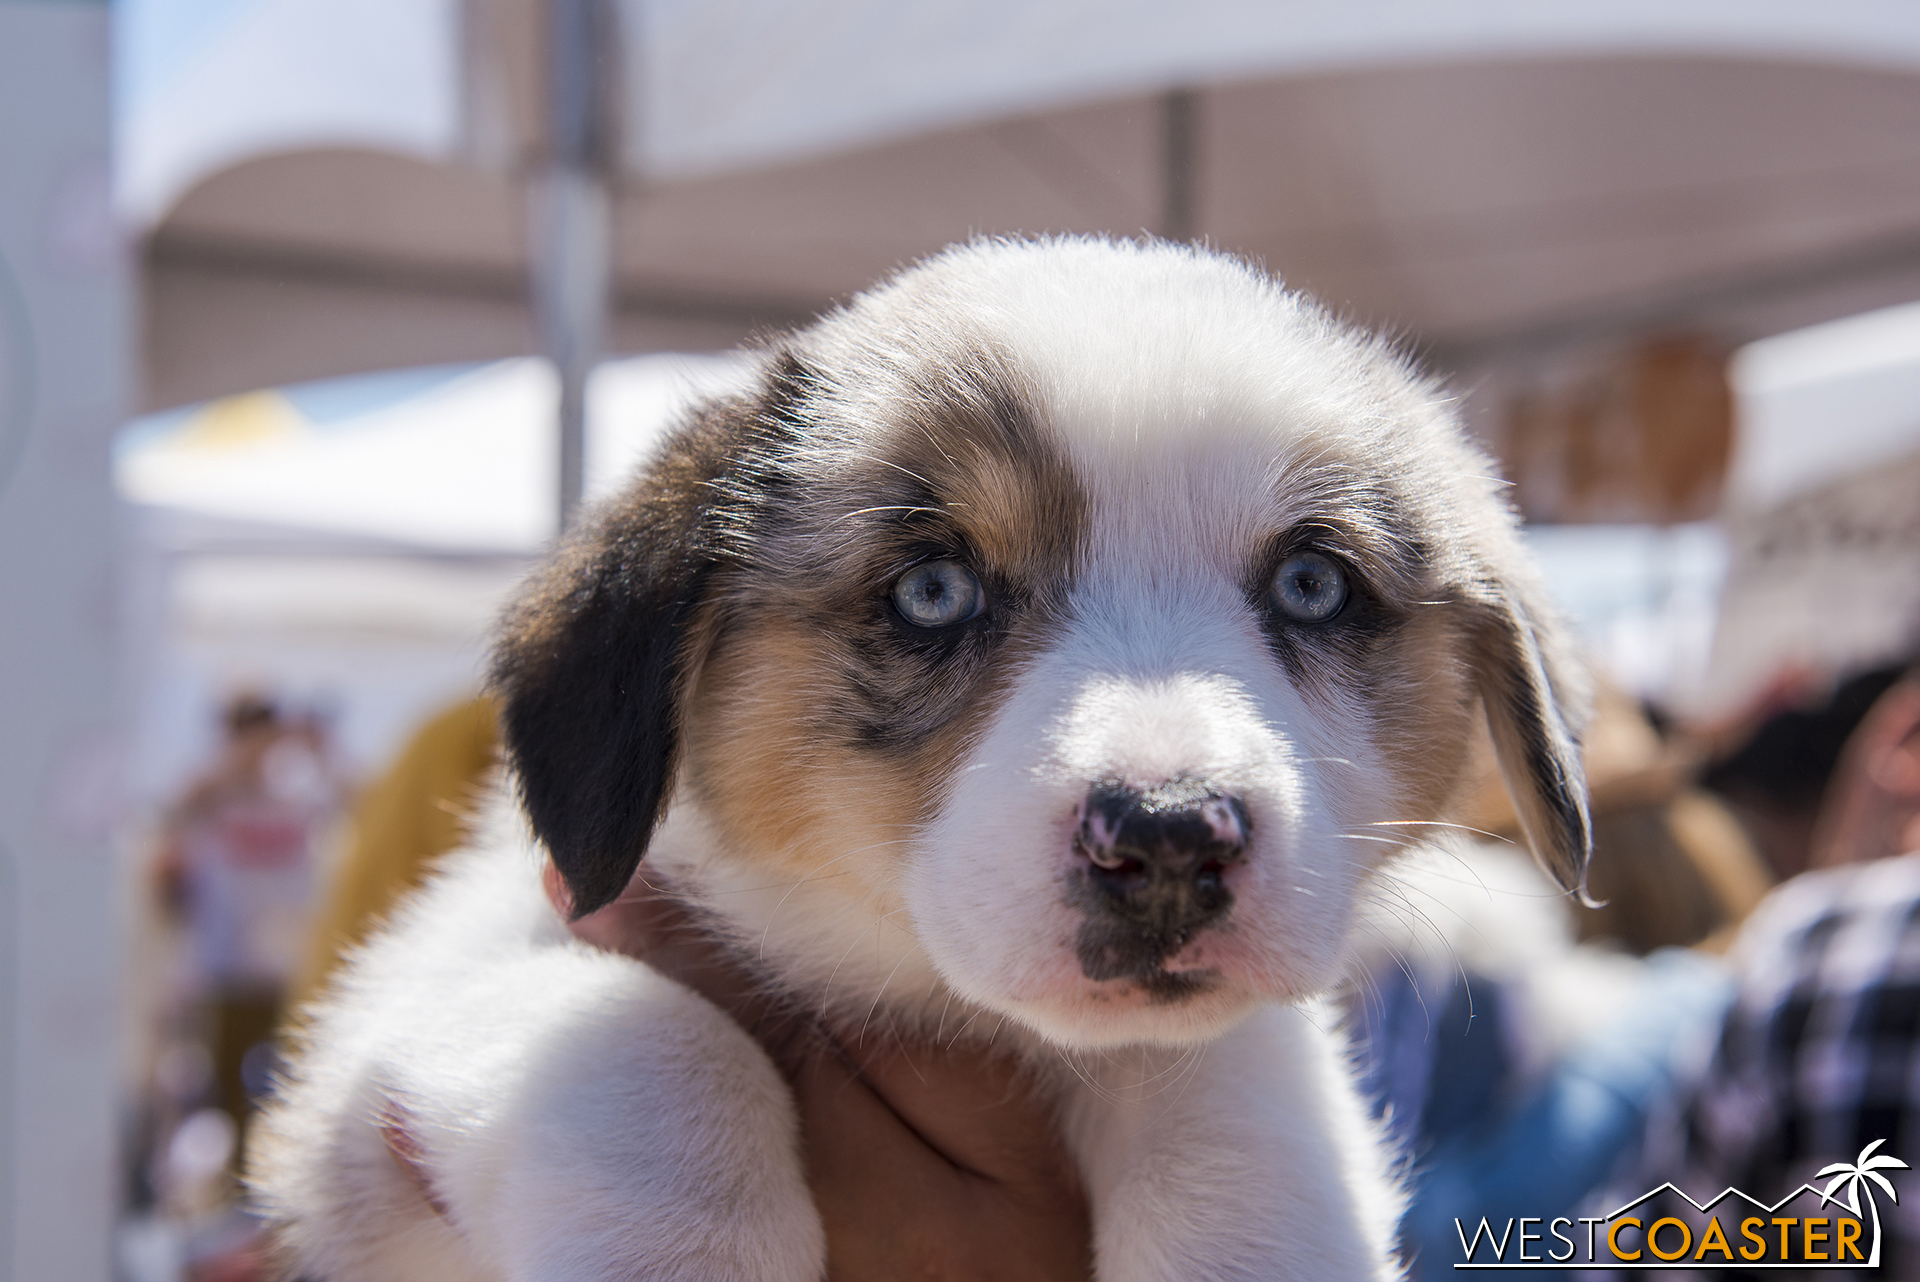 There were doggos everywhere, like this absolutely freaking adorable 8 WEEK OLD mix OMG JUST LOOK AT HIS EYES AND HIS FLUFFINESS AGGGHHHHHH ADORABLE OVERLOAD!!!